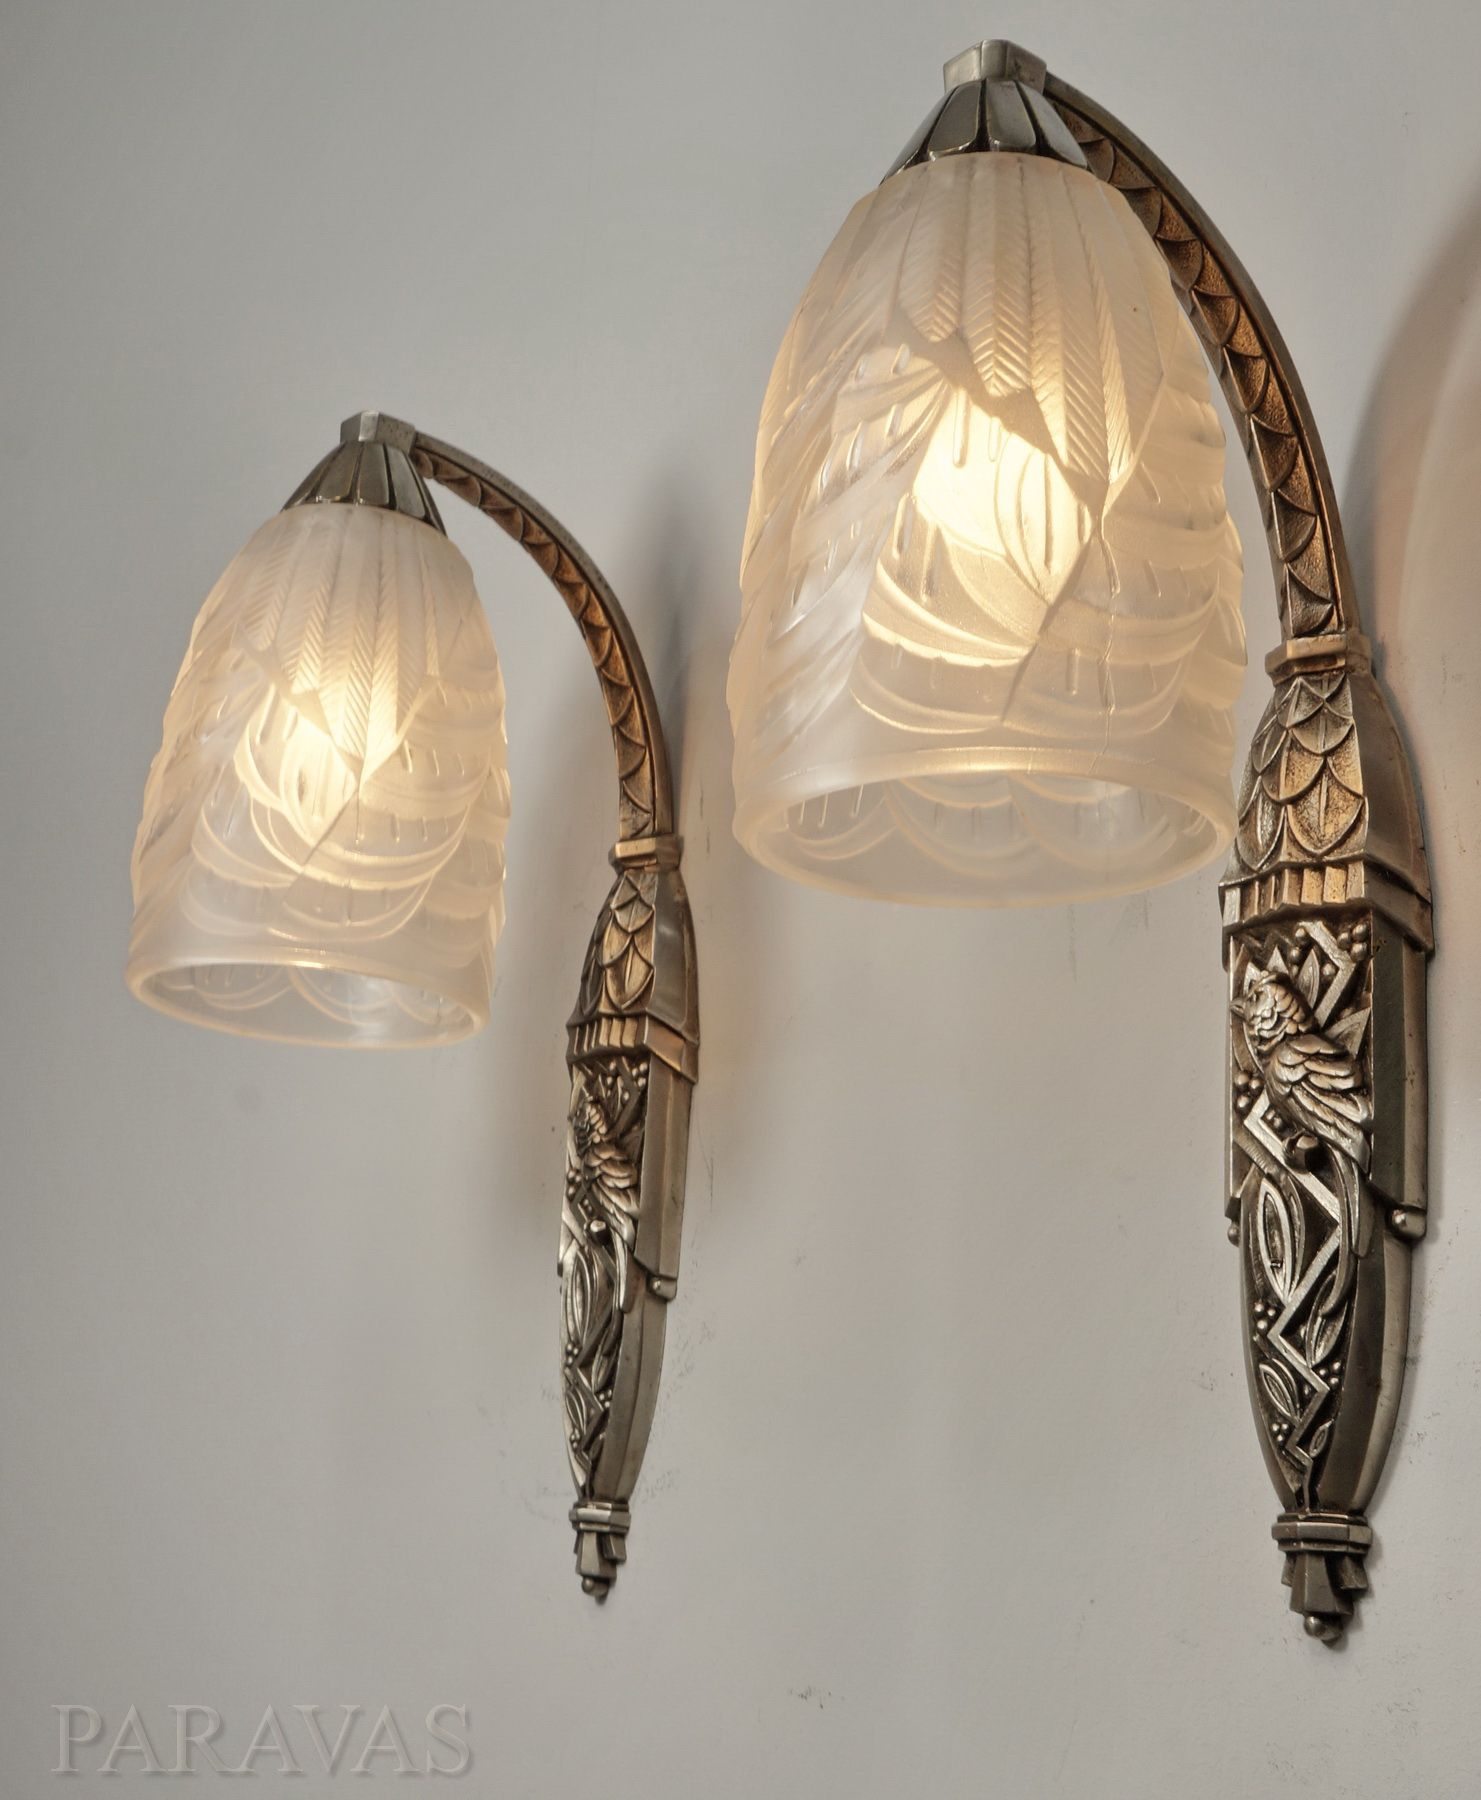 Schneider Pair Of 1930 French Art Deco Wall Sconces